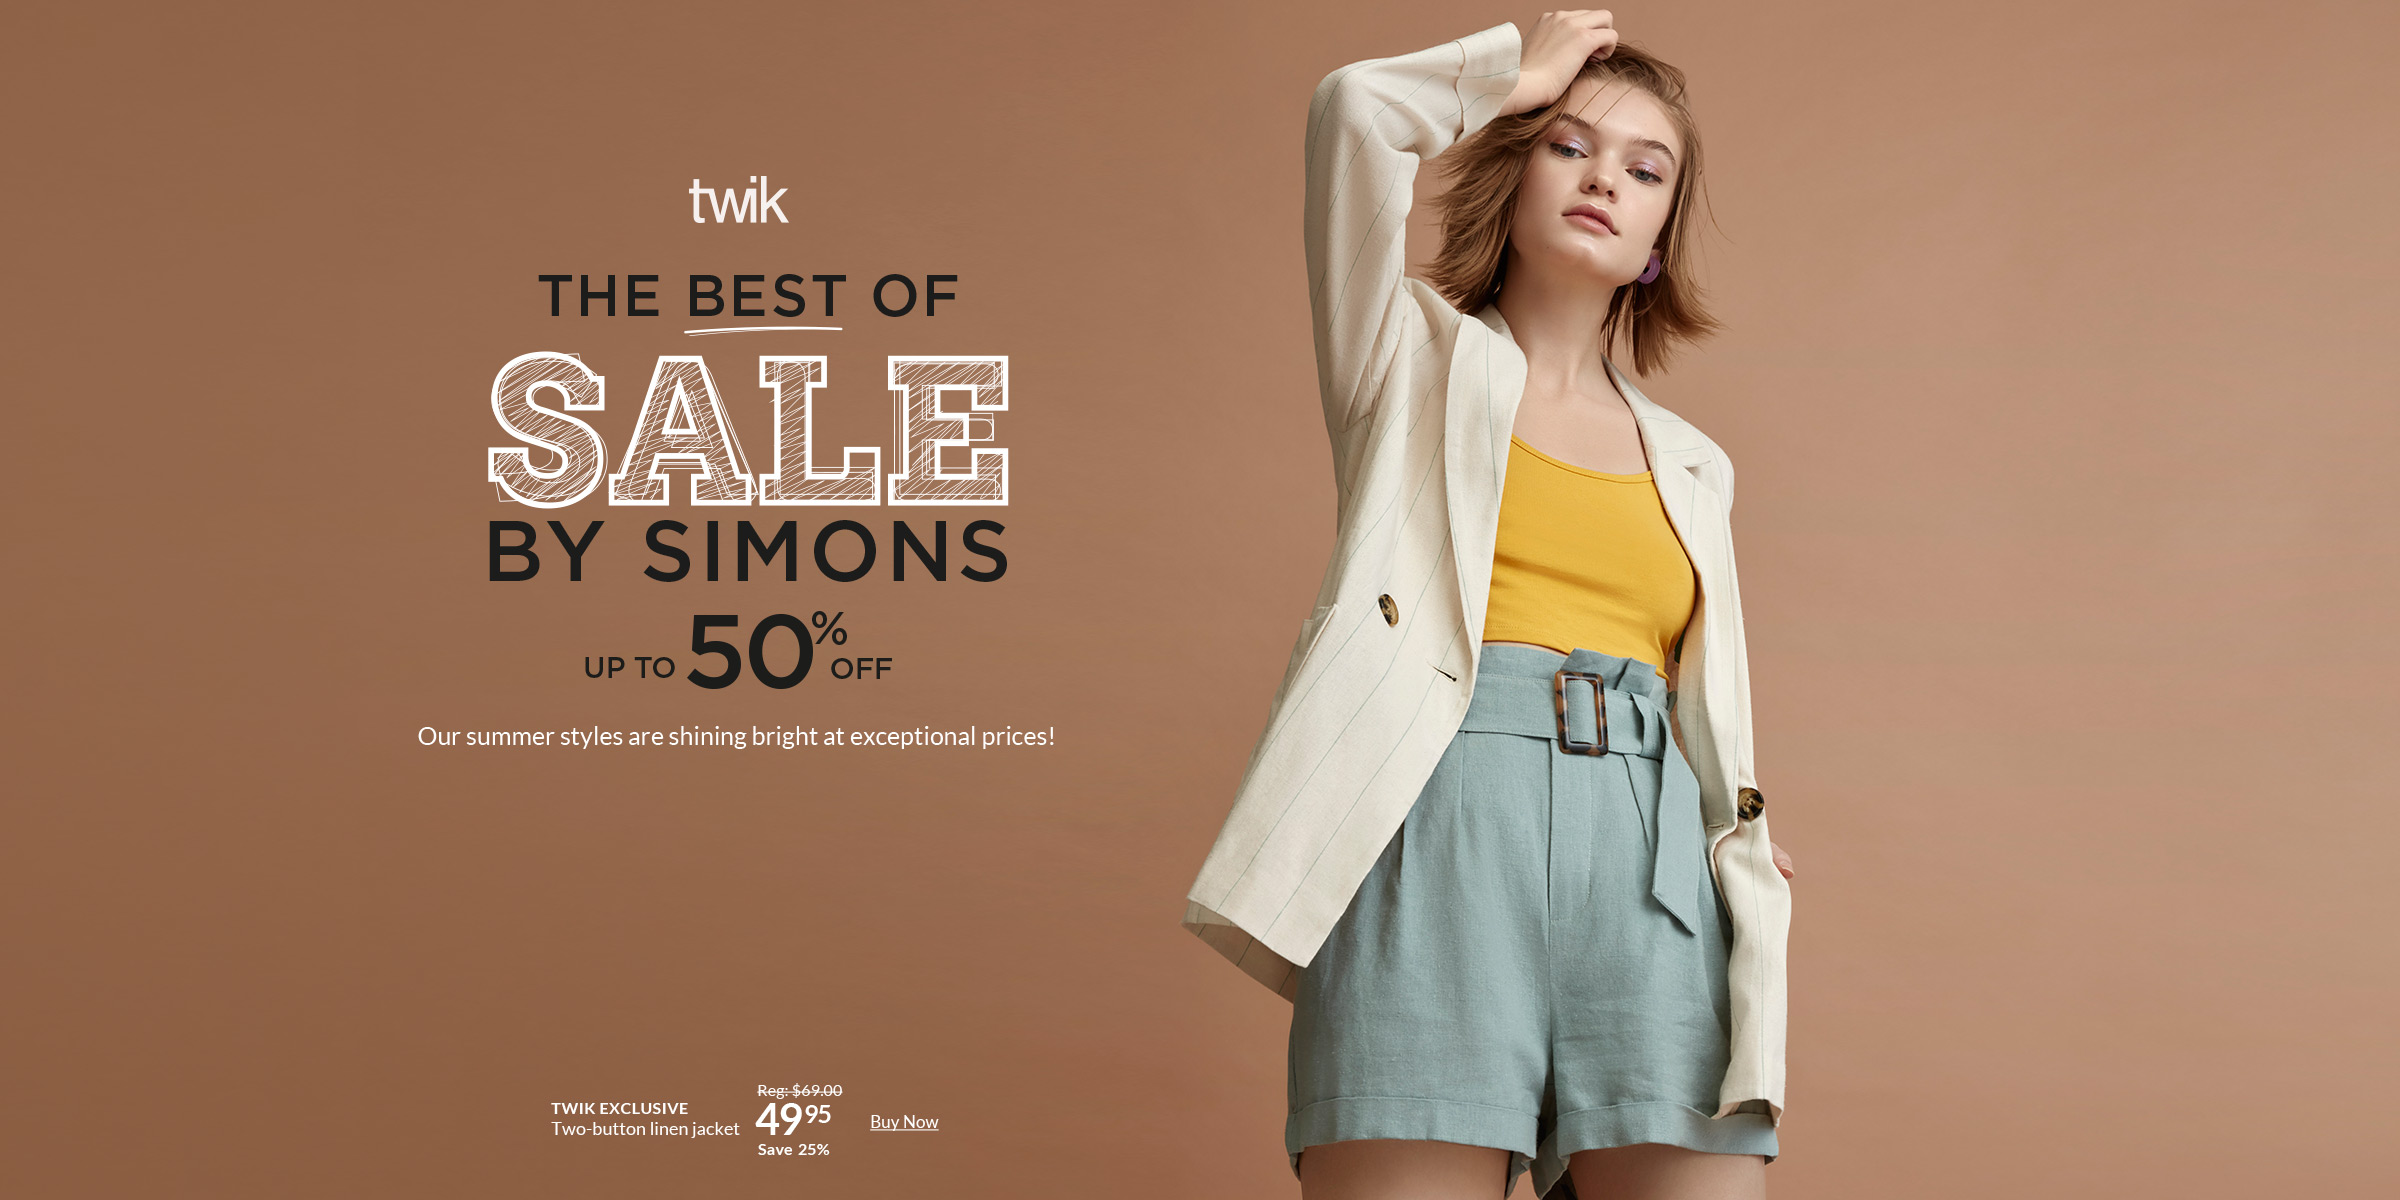 75ea6a5ee3 Women's Clothing & Fashion Accessories for Spring/Summer | Simons